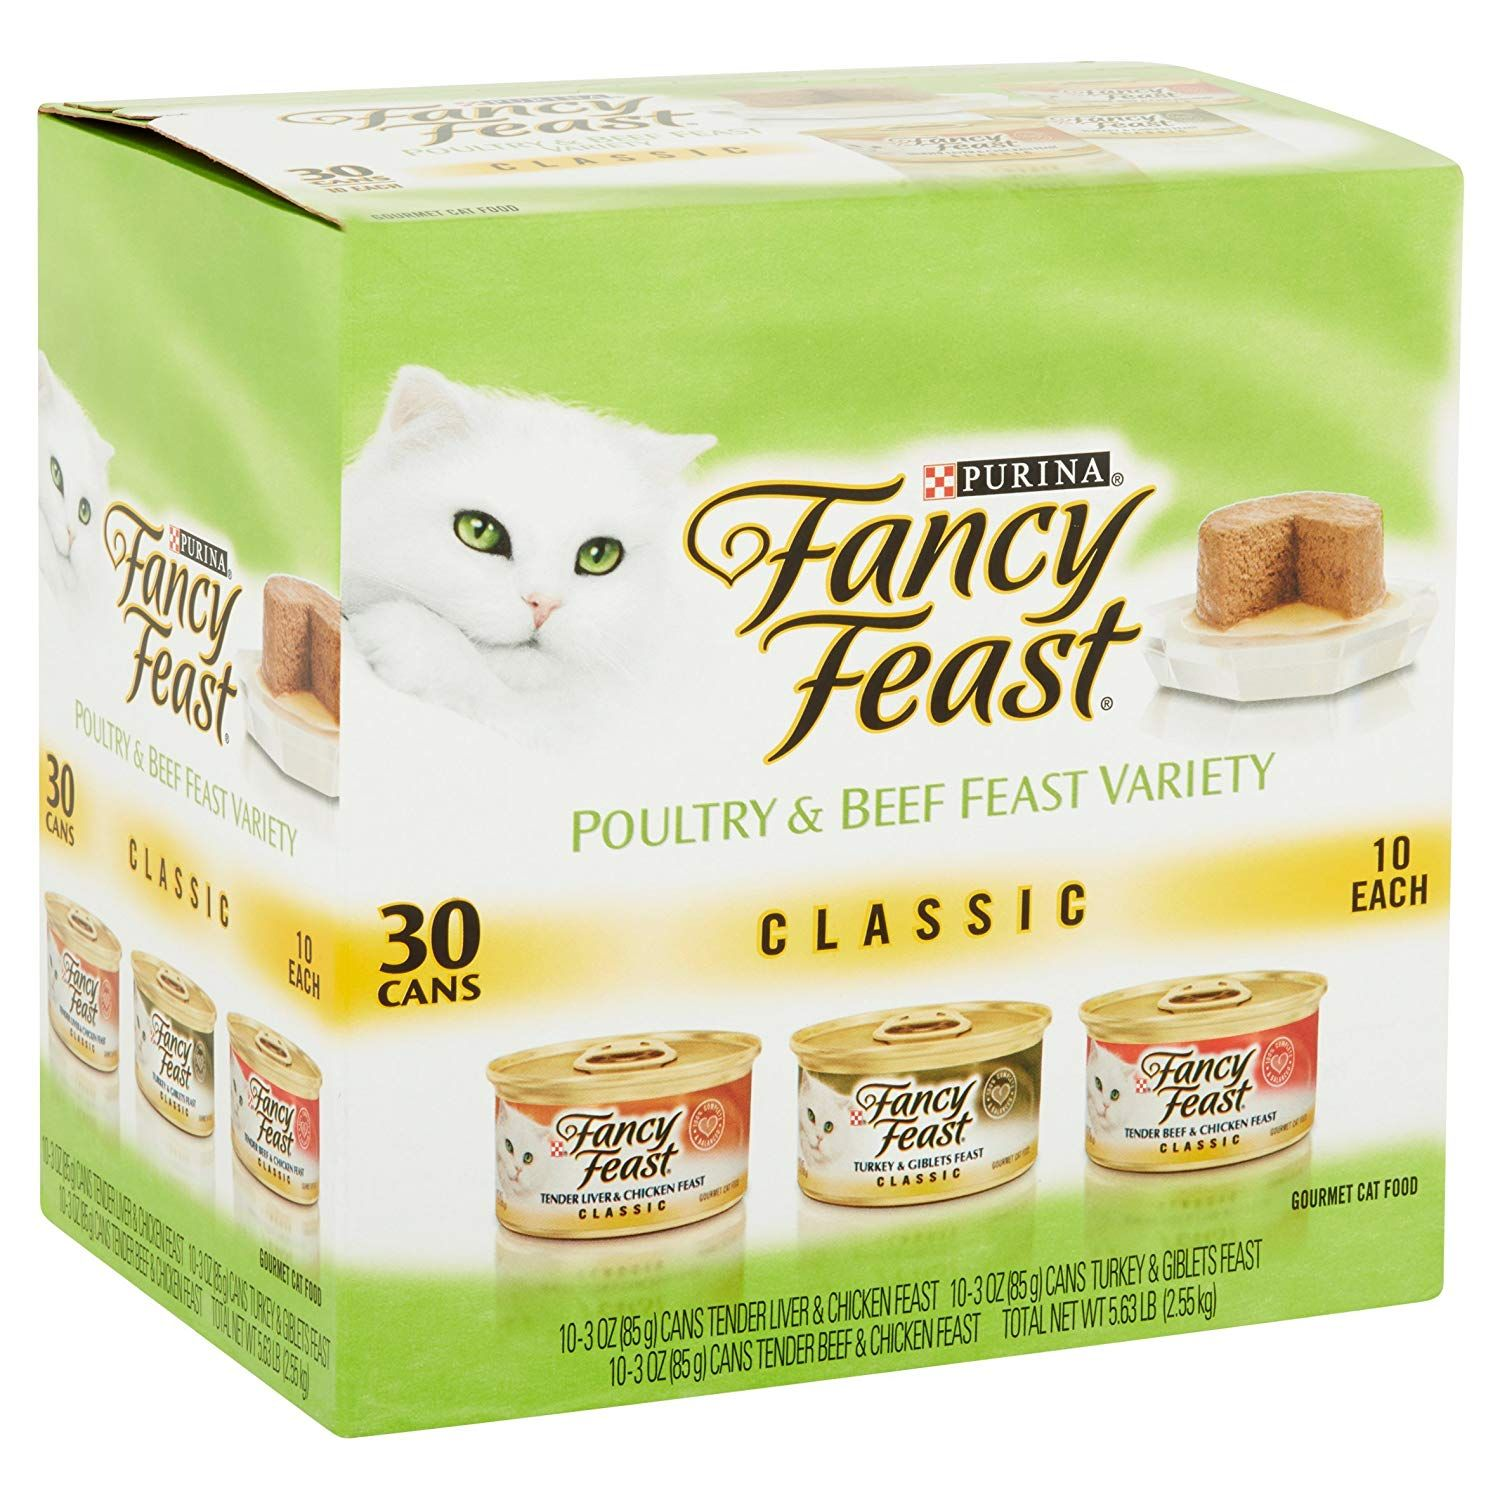 Purina Fancy Feast Cans 3 Oz Wet Cat Food Classic Poultry Tender Beef Feast Variety Pack Finely Ground And Delightfully Smooth Li Food Cat Food Wet Cat Food